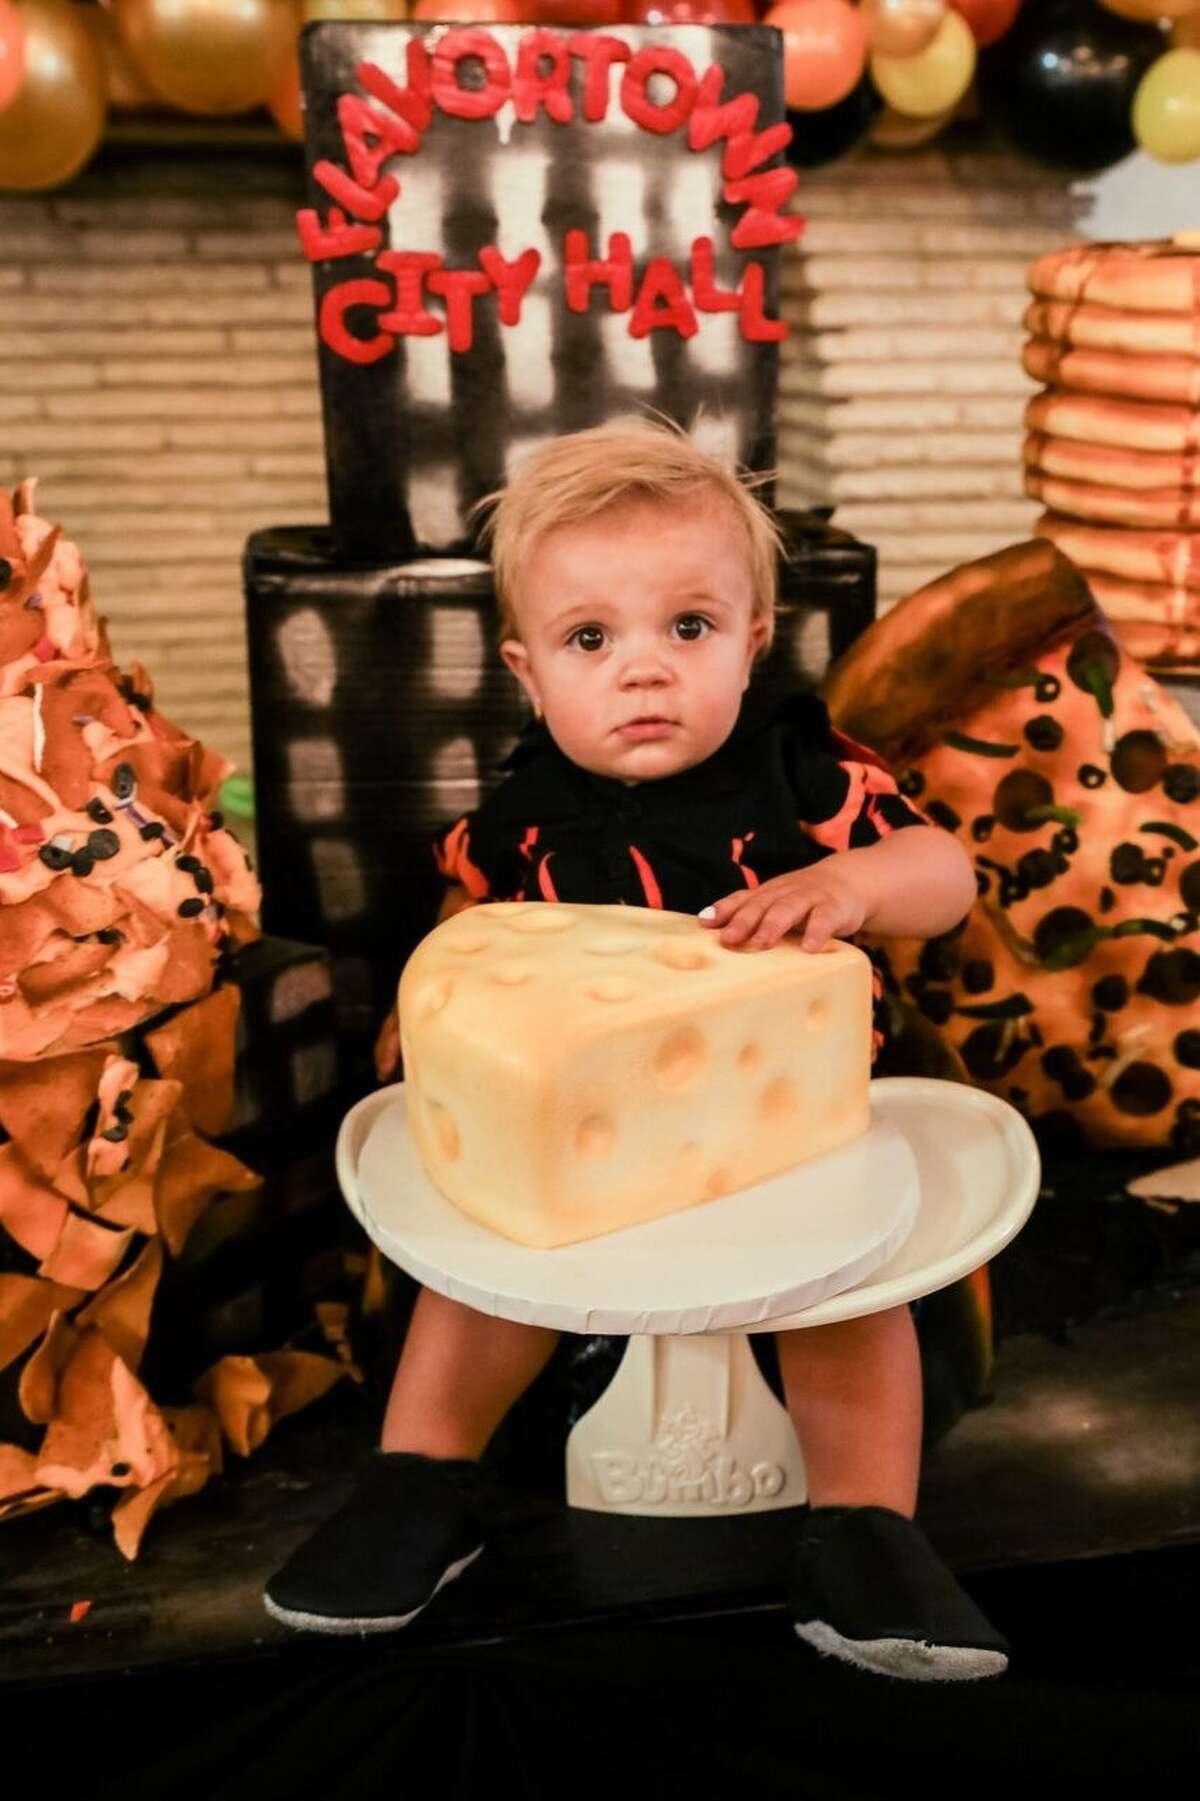 Nataly Stein, a bakery business owner and mother of two in Southern California, threw a Guy Fieri-themed Flavortown first birthday for her son, Campbell.